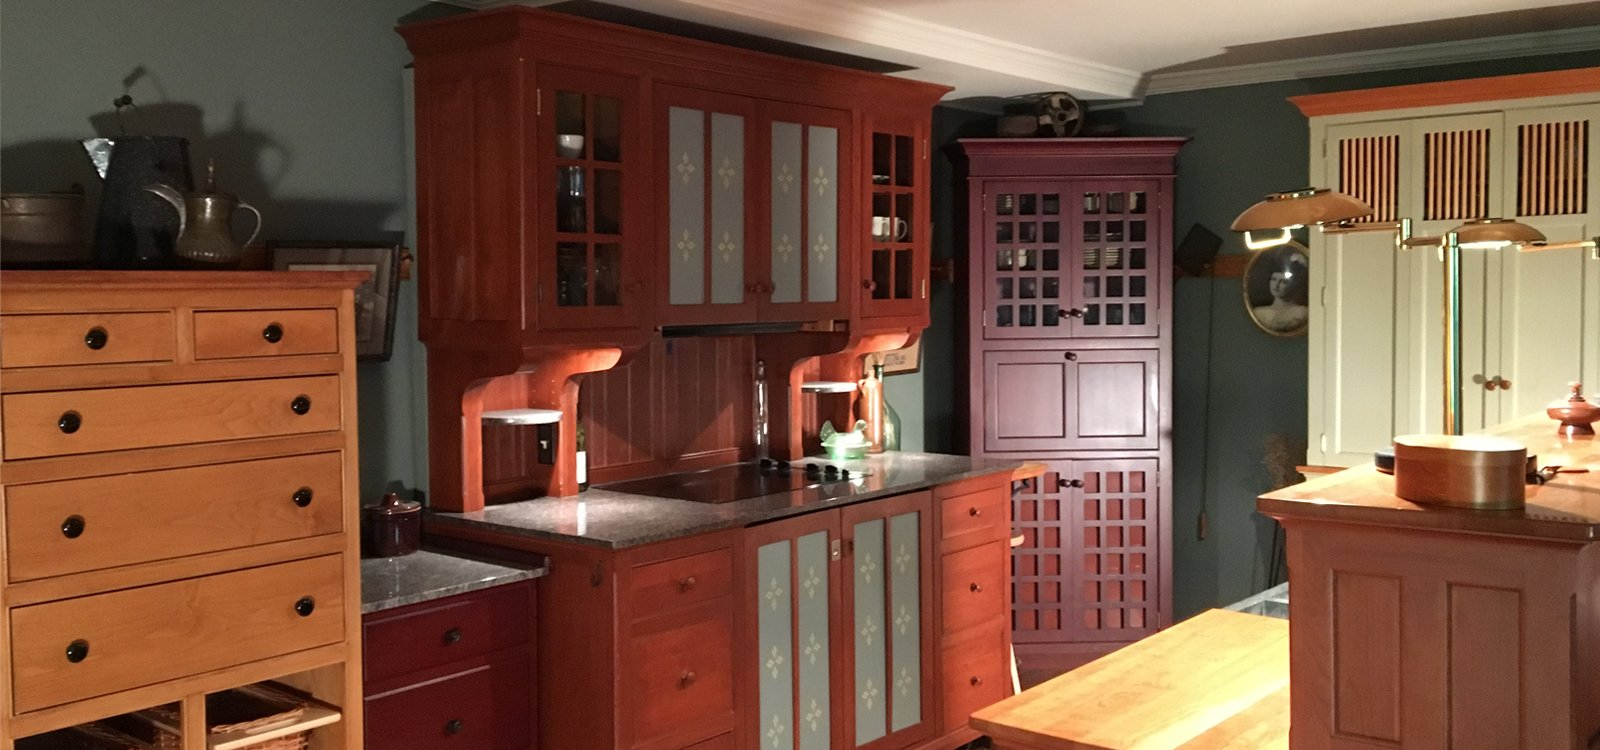 kitchen workstation furniture